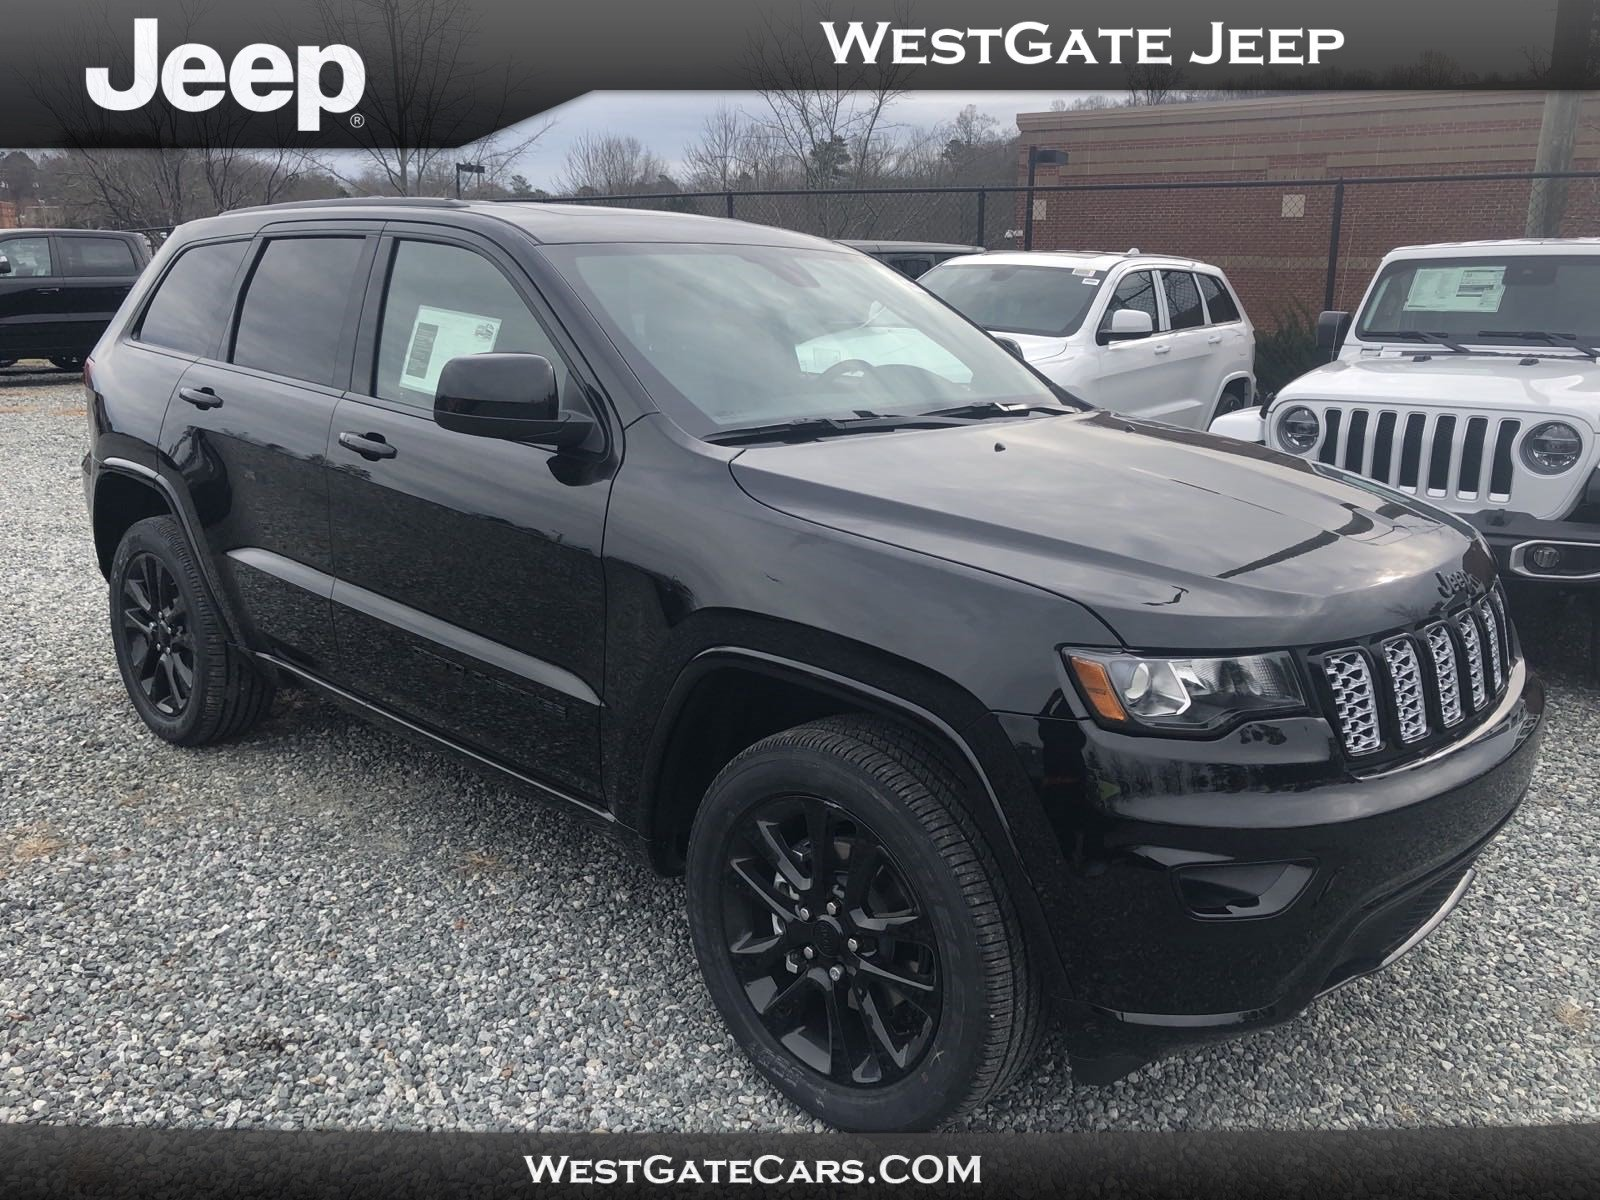 New Used Jeep Grand Cherokee For Sale Raleigh Nc Wetsgate Jeep